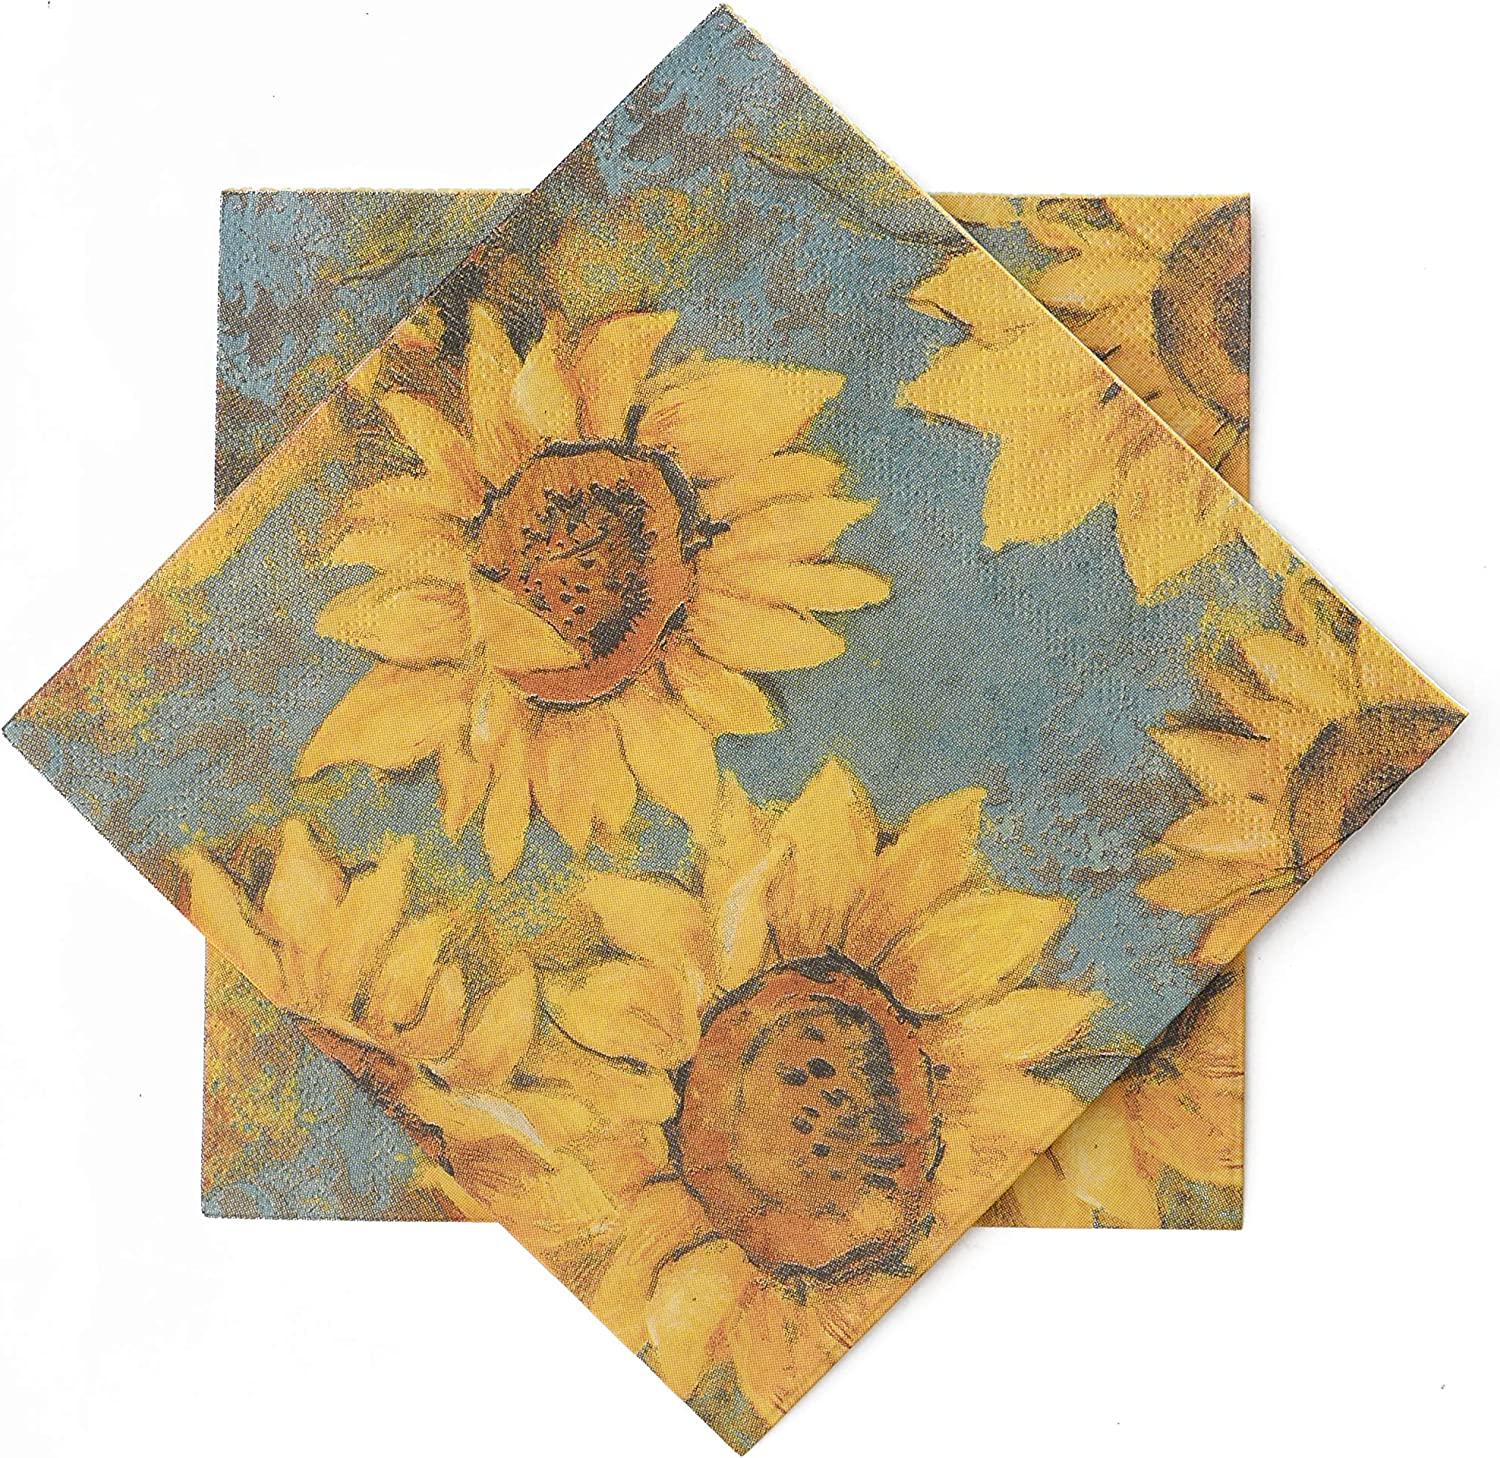 """elinnee Sunflower Paper Napkins for Decoupage, Pack of 40, 3Ply Cocktail Napkins for Dinner Beverage Party Bathroom Guest Disposable Everyday, 13""""x13"""", Sunflower"""